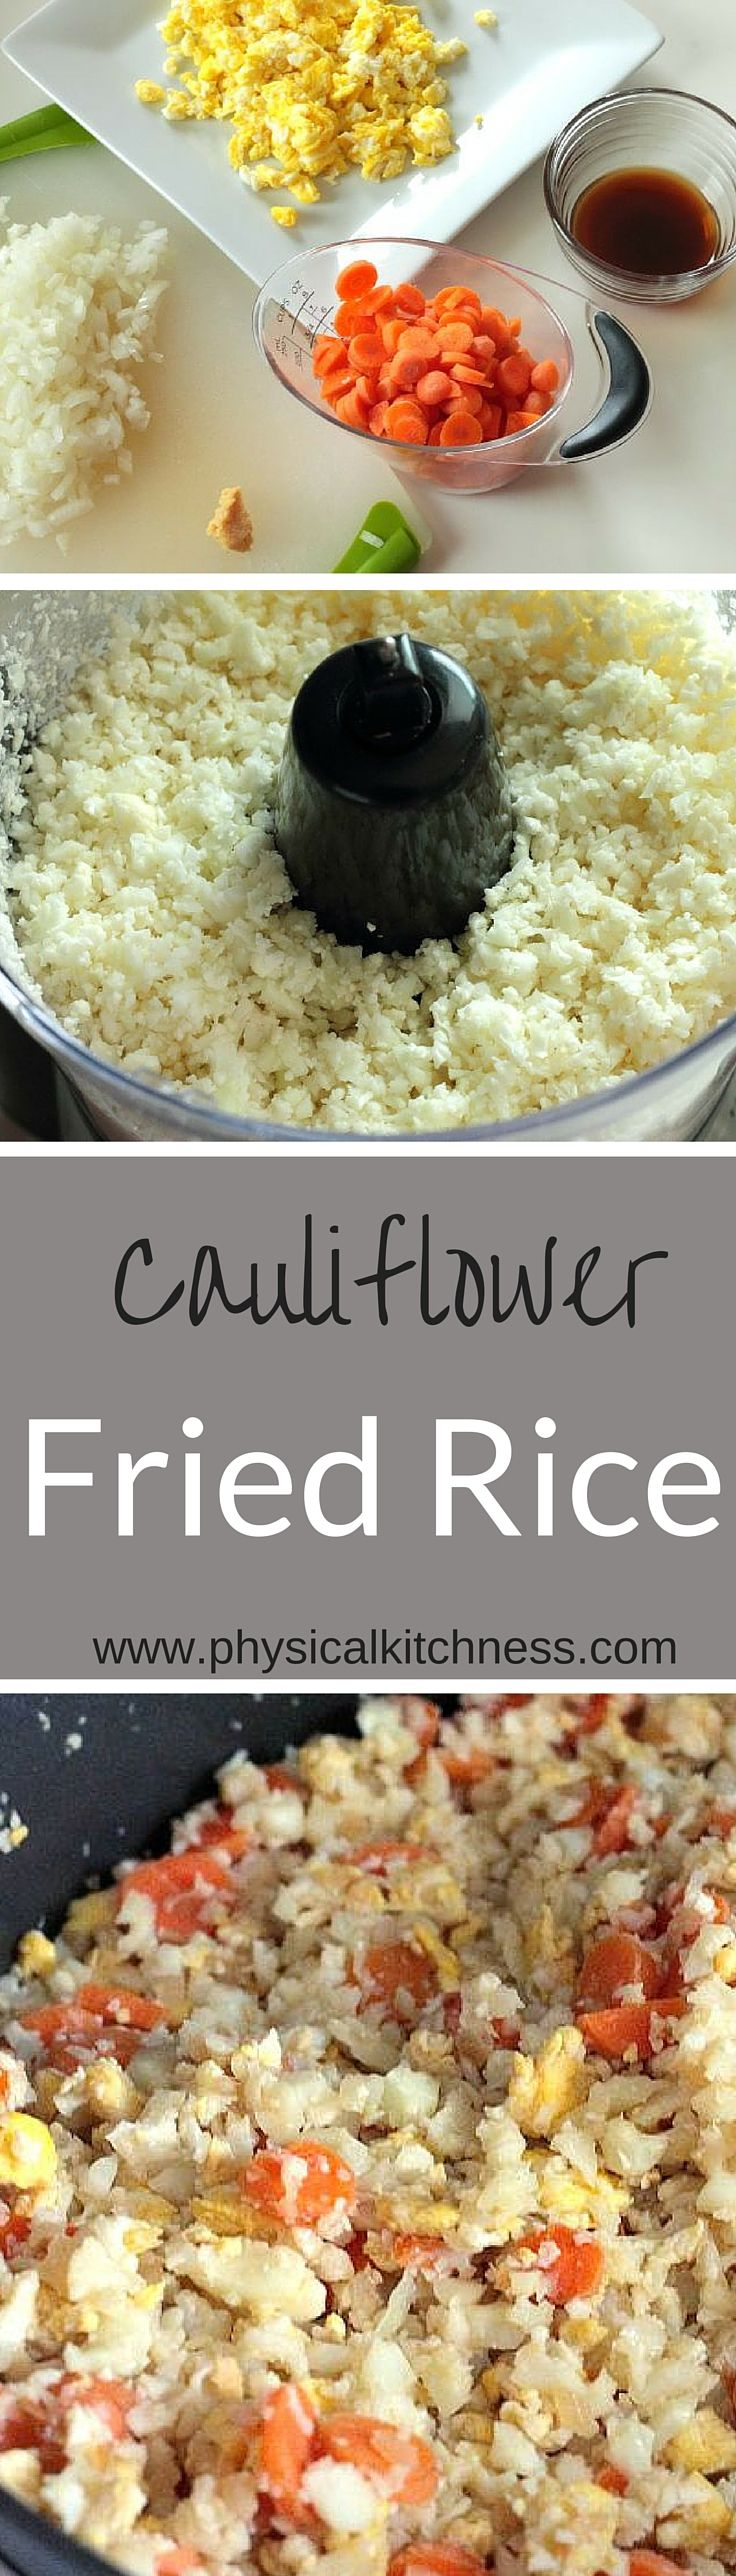 An easy recipe for cauliflower fried rice. Great alternative to carb-loaded traditional fried rice.